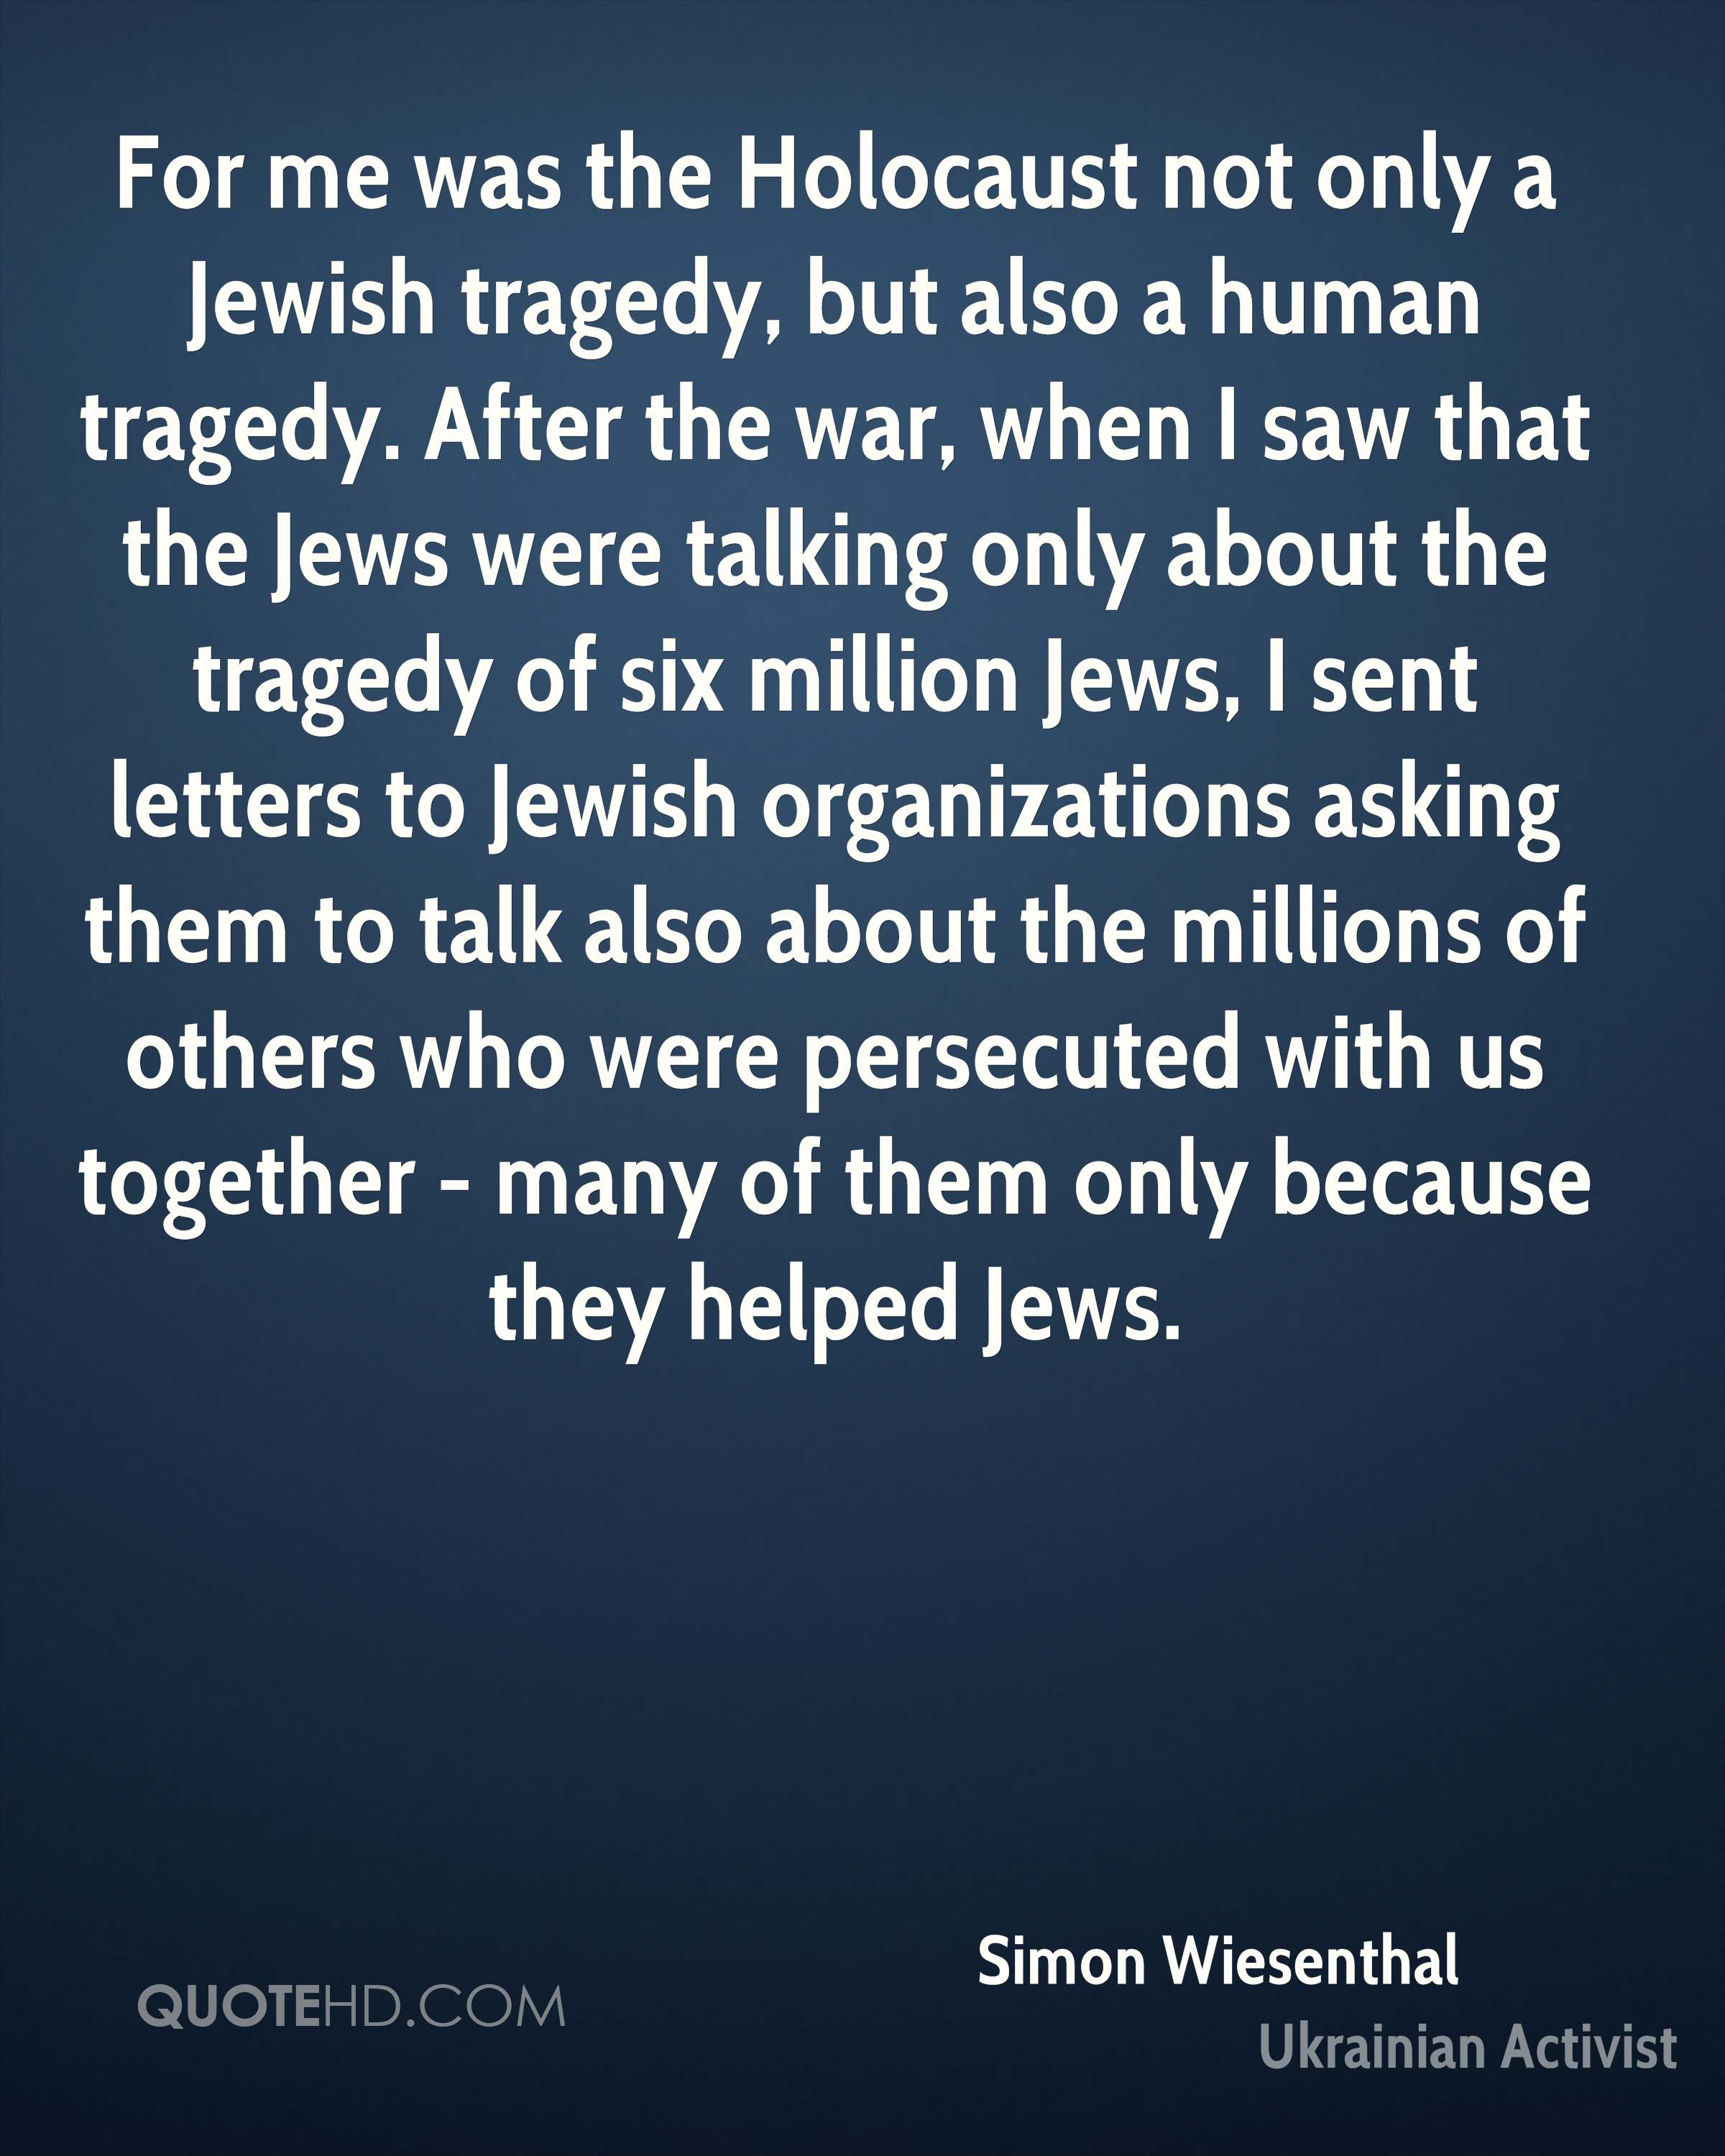 For me was the Holocaust not only a Jewish tragedy, but also a human tragedy. After the war, when I saw that the Jews were talking only about the tragedy of six million Jews, I sent letters to Jewish organizations asking them to talk also about the millions of others who were persecuted with us together - many of them only because they helped Jews.